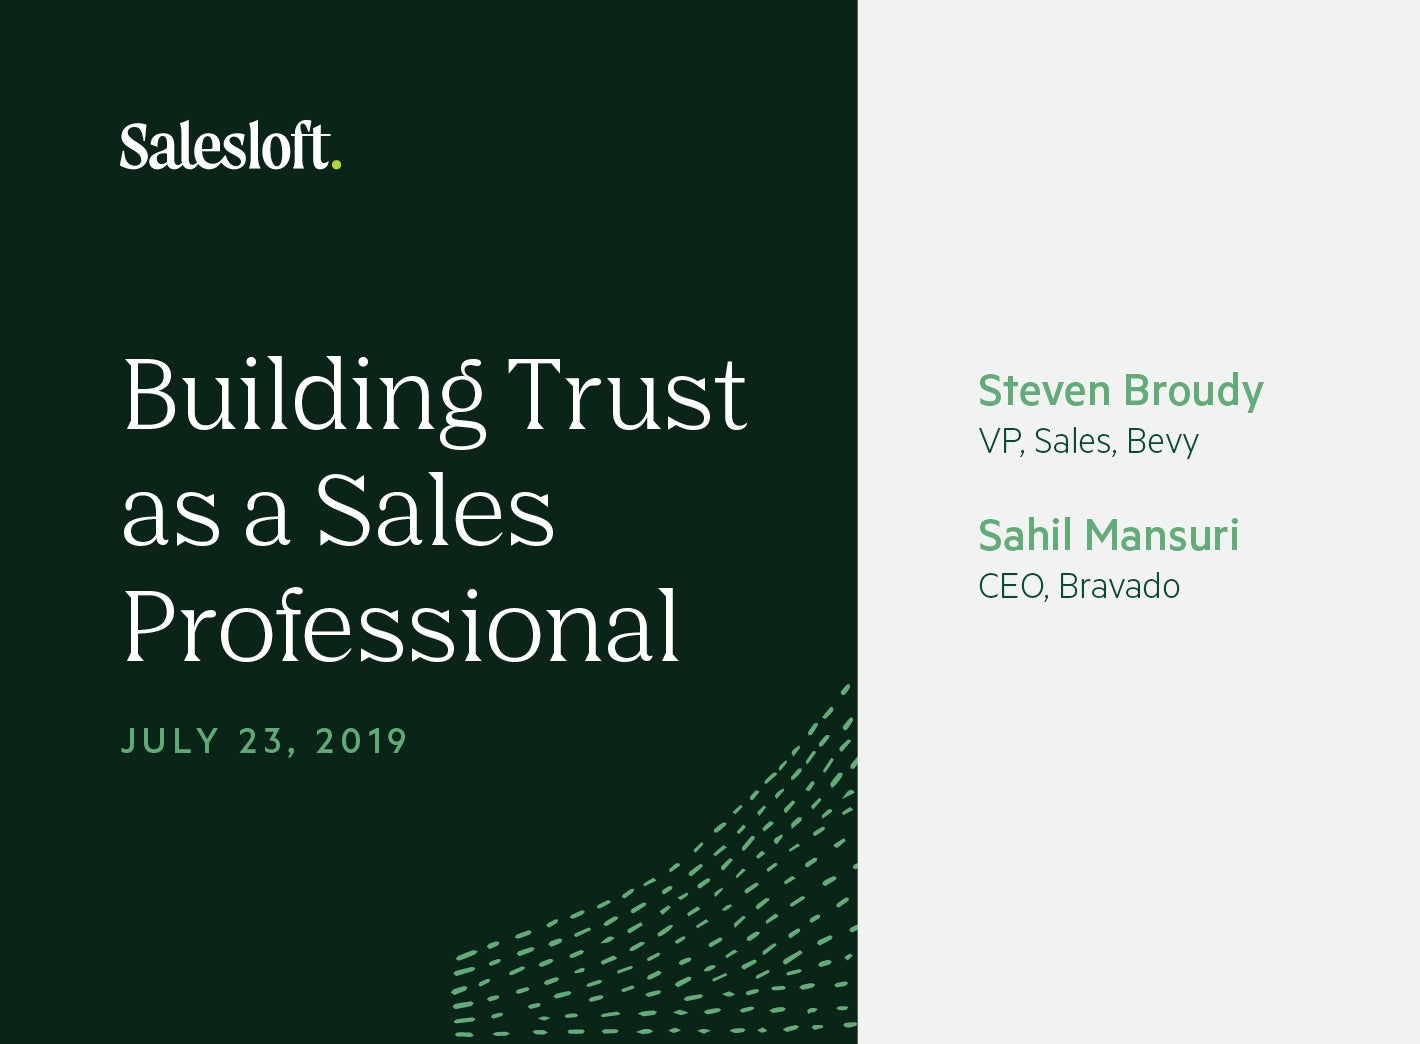 Building Trust as a Sales Professional